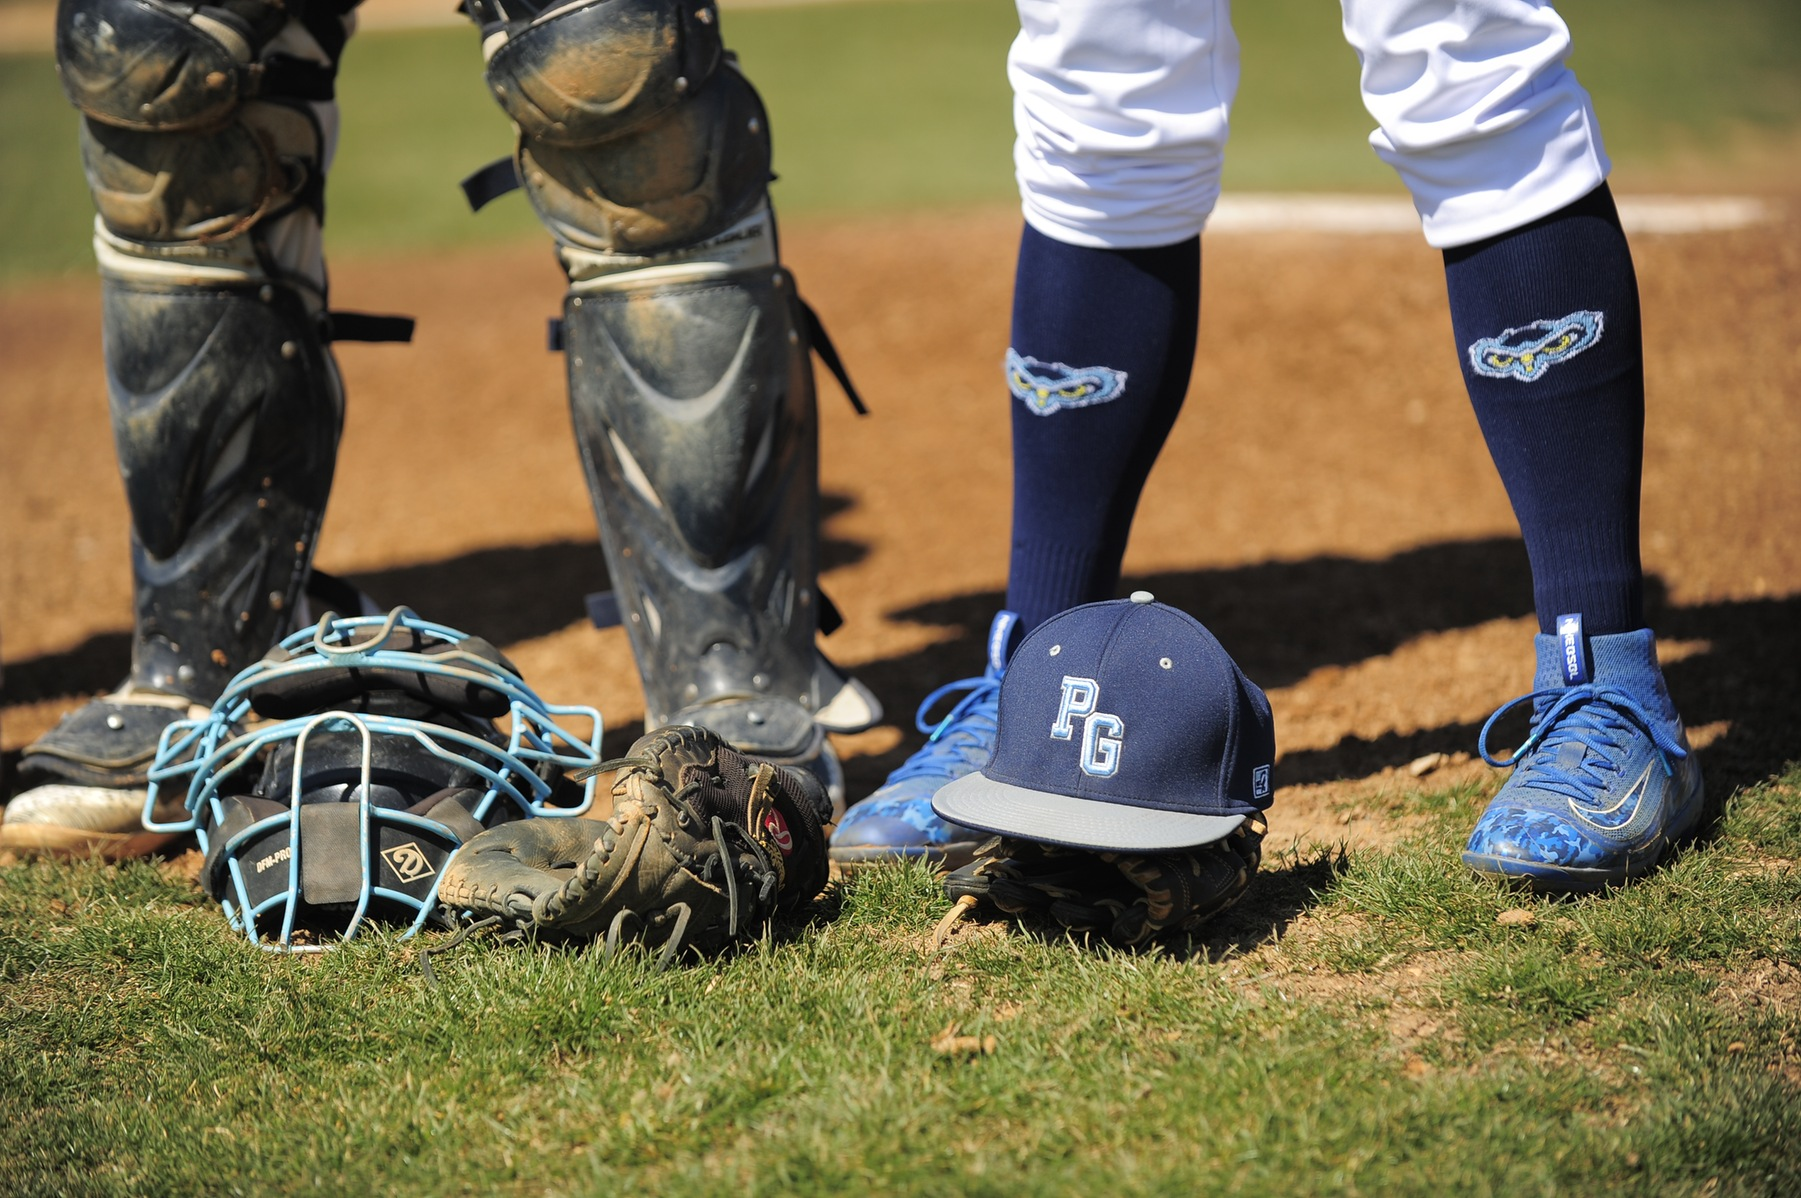 Prince George's Baseball Falls To No. 10 In NJCAA Division III Baseball Rankings